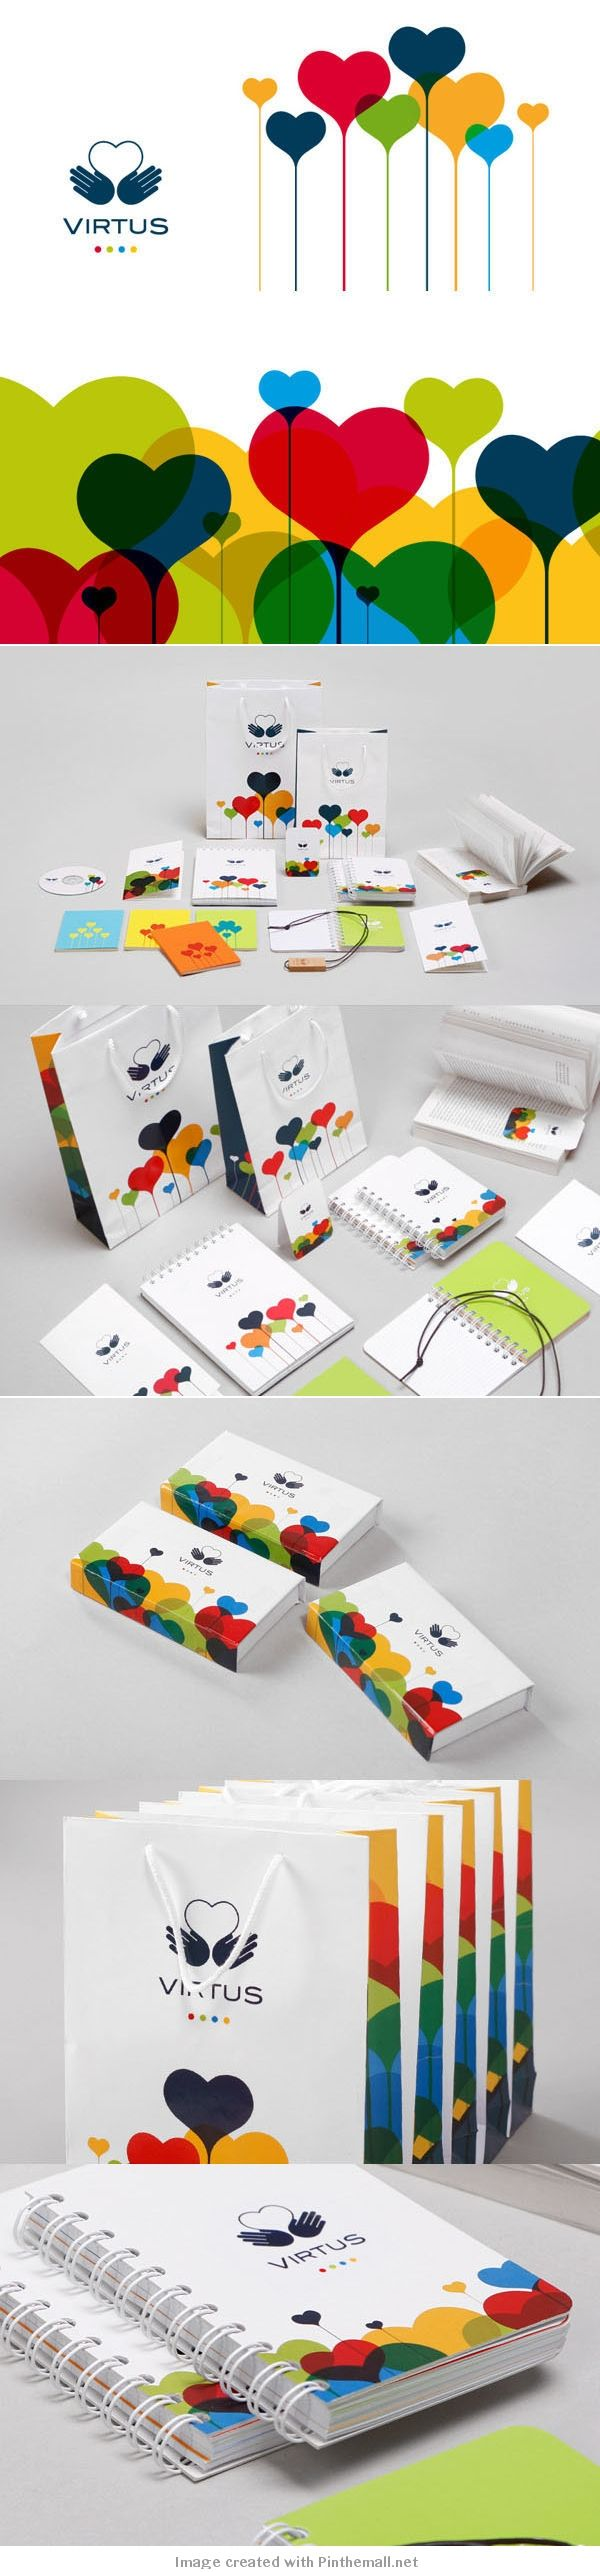 28 Creative Branding and Identity Design examples for your inspiration / Virtus